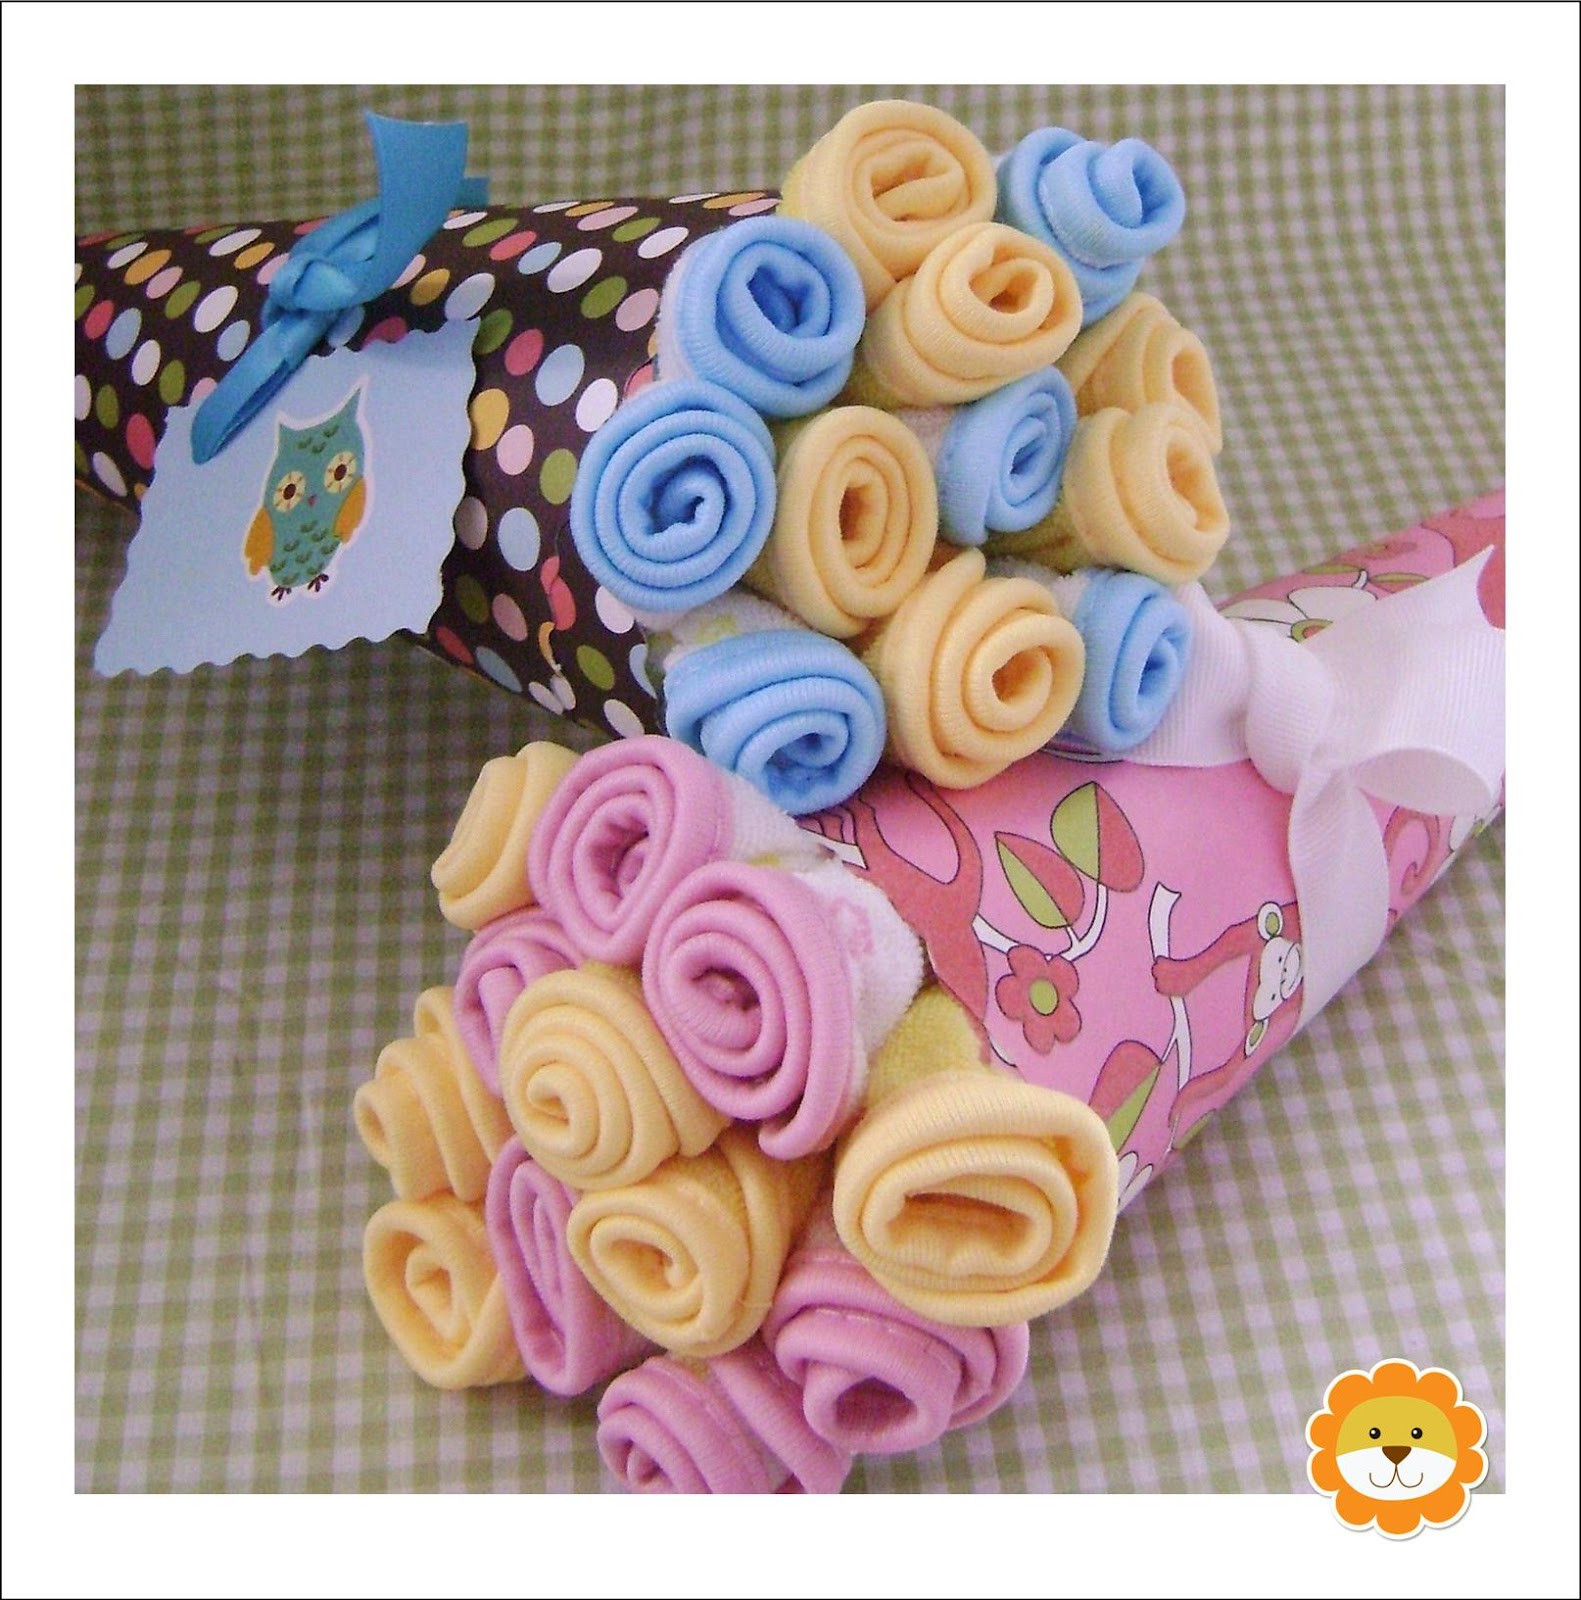 Best ideas about Cute Baby Shower Gift Ideas . Save or Pin It s Written on the Wall Cute Ideas for Your Baby Shower Now.